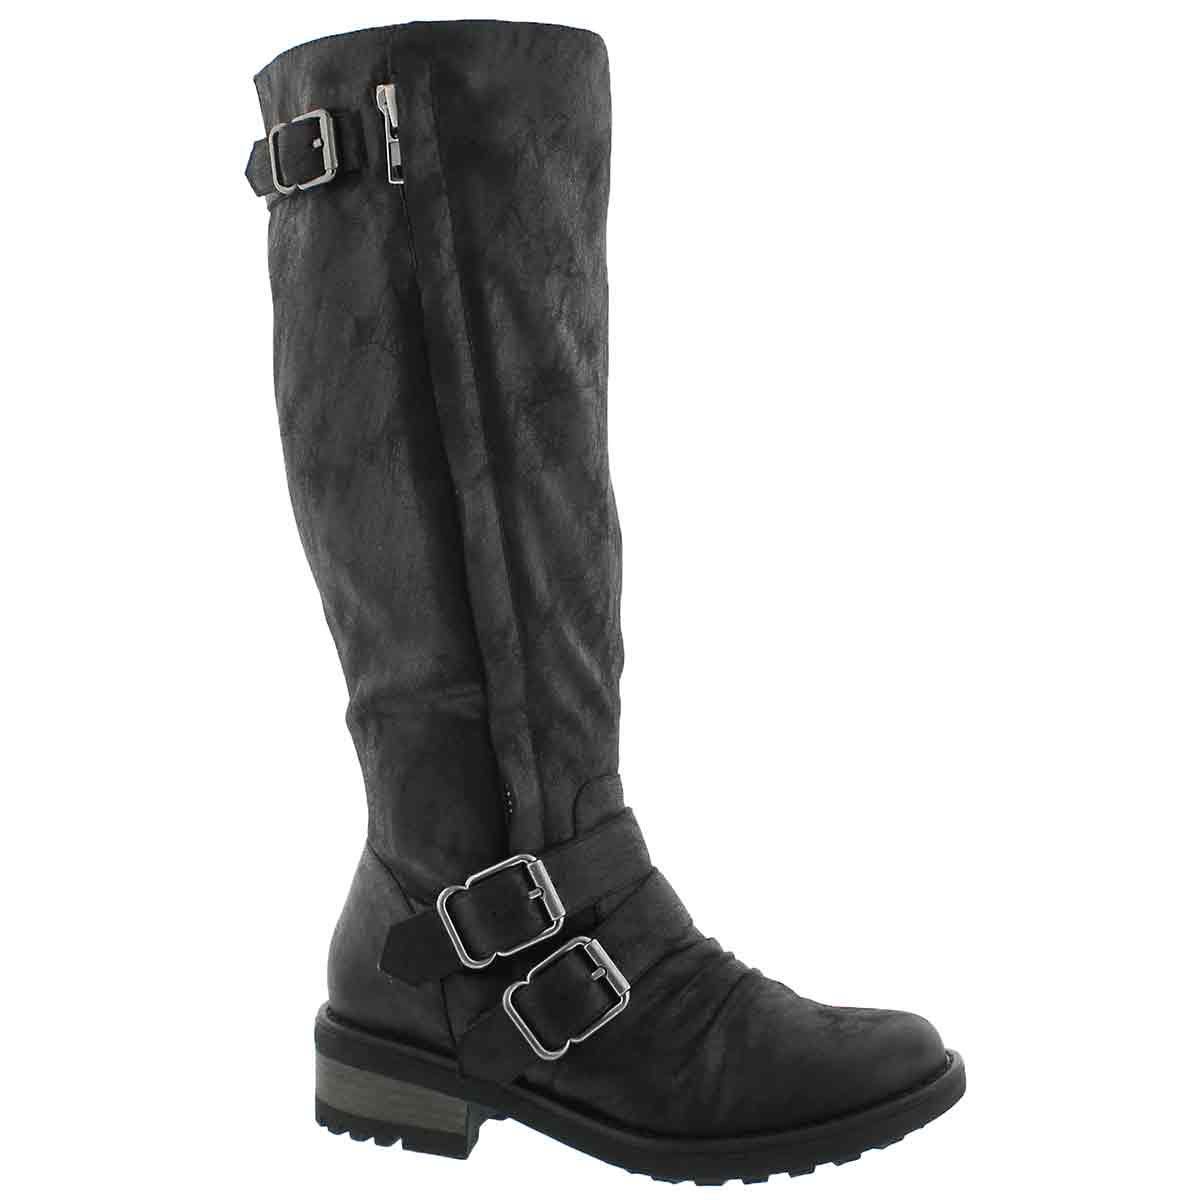 Women's BLIXI III I black riding boots